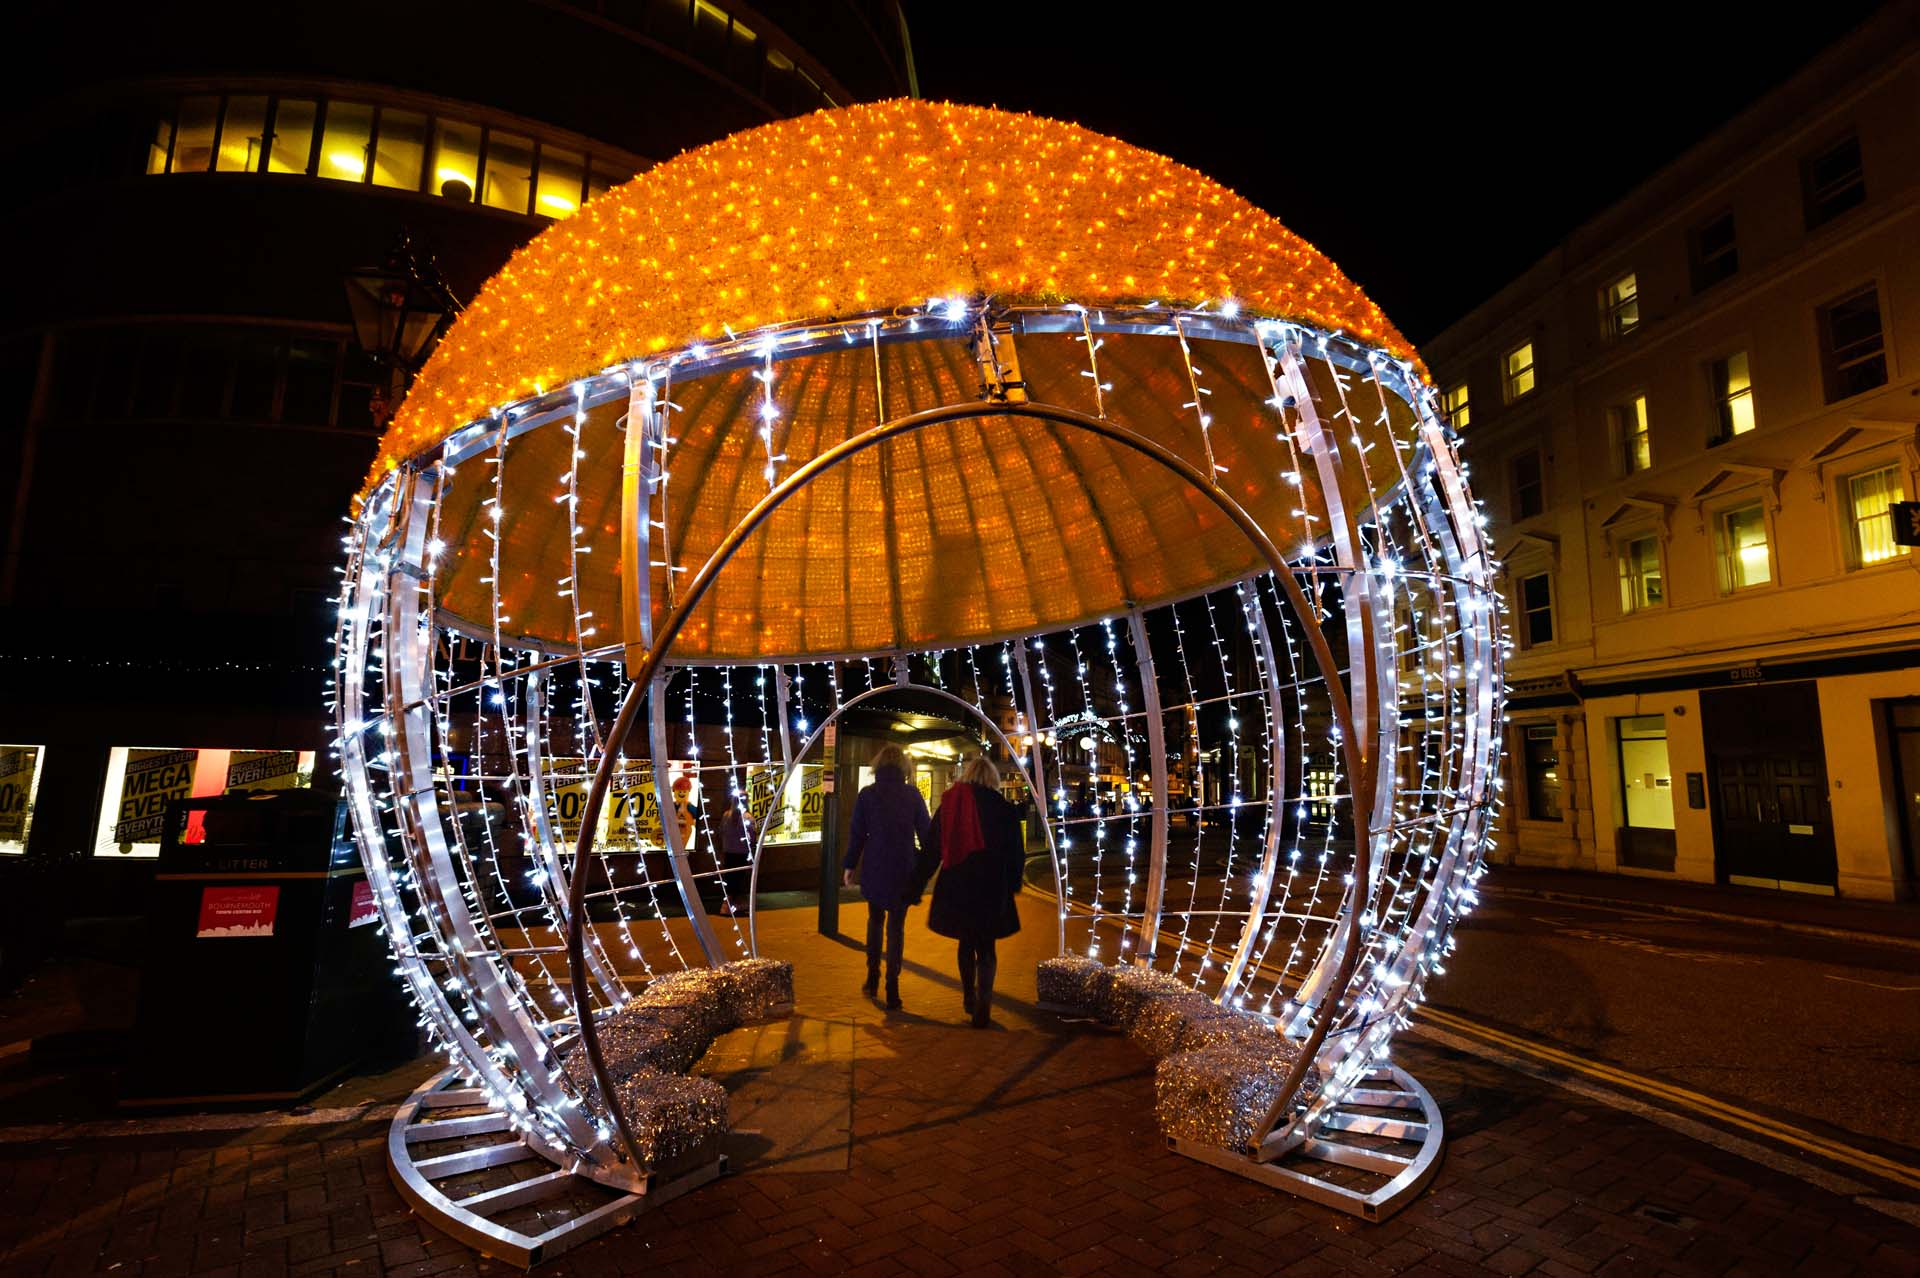 Night time shot of the Giant Bauble in Beales place, Bournemouth